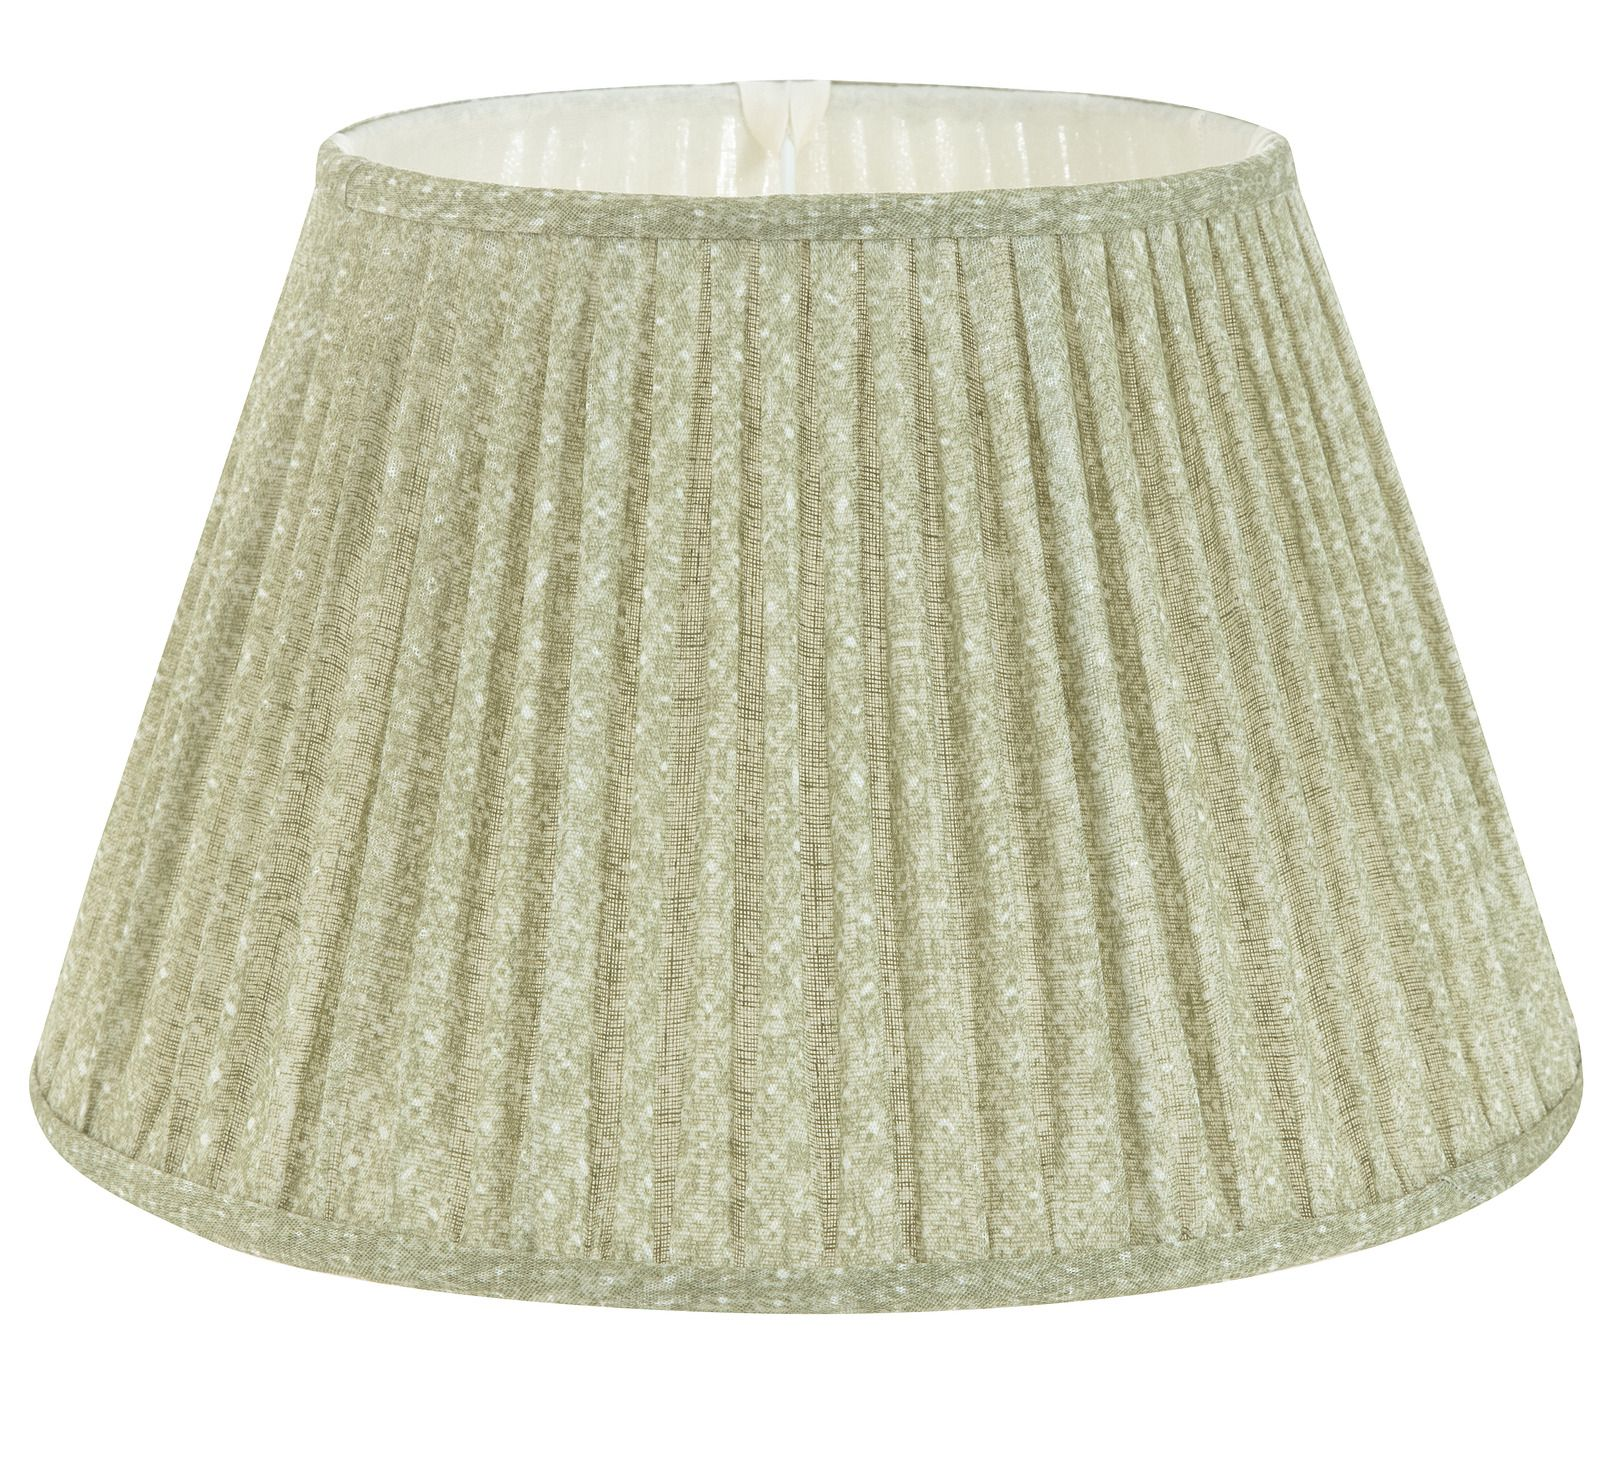 linen reeves product lighting smoke edge lamp edgar dt lampshades shades rolled